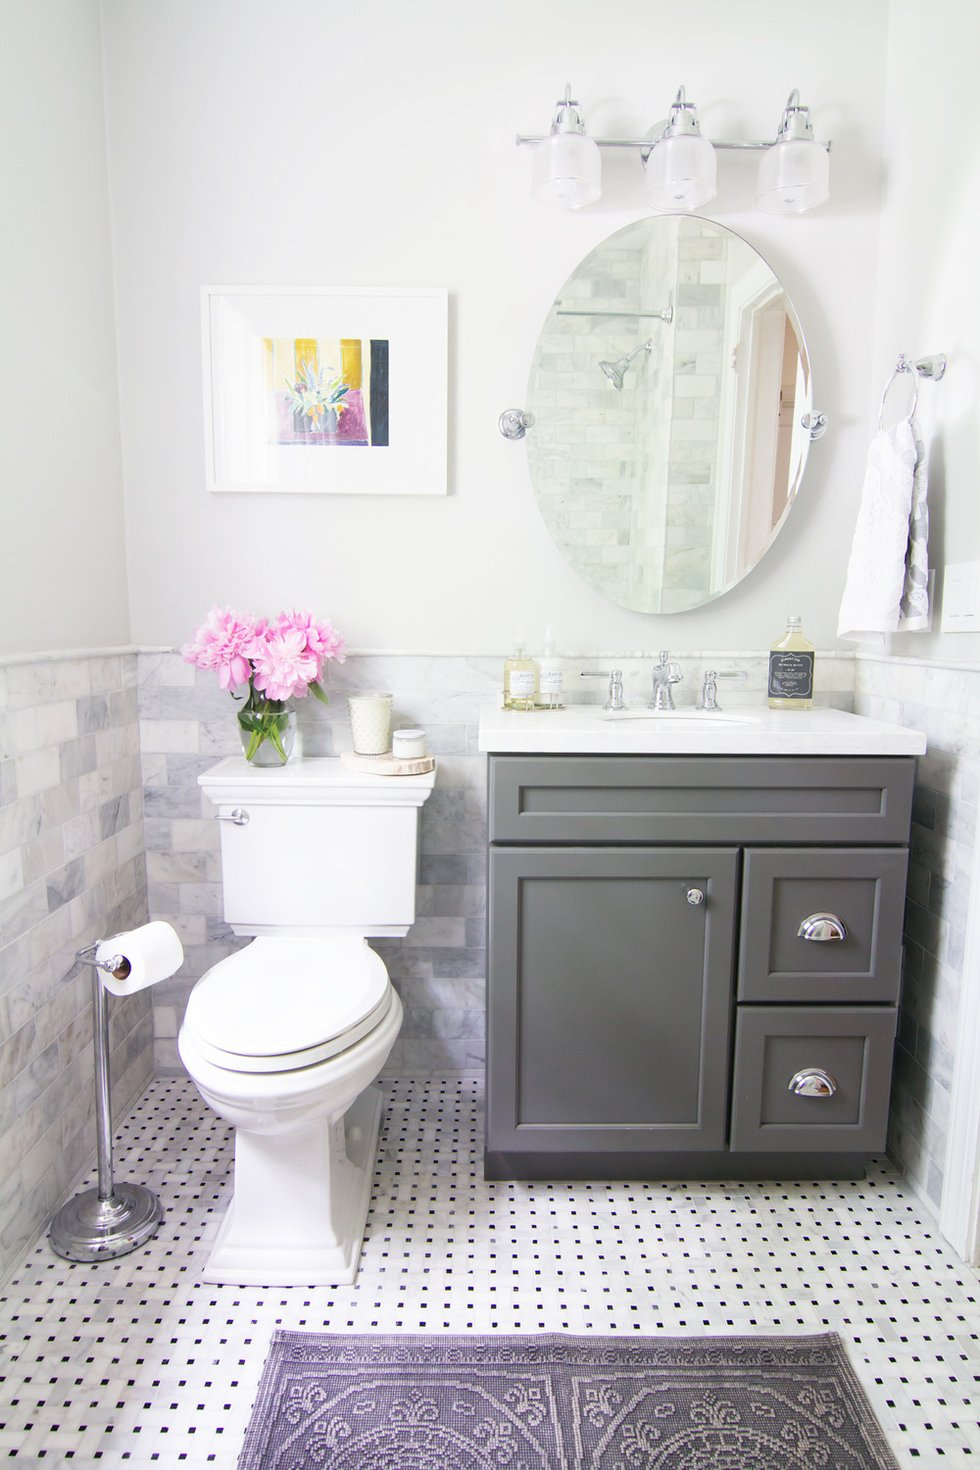 Modern and simple small bathroom ideas you can try at home for Small lavatory designs